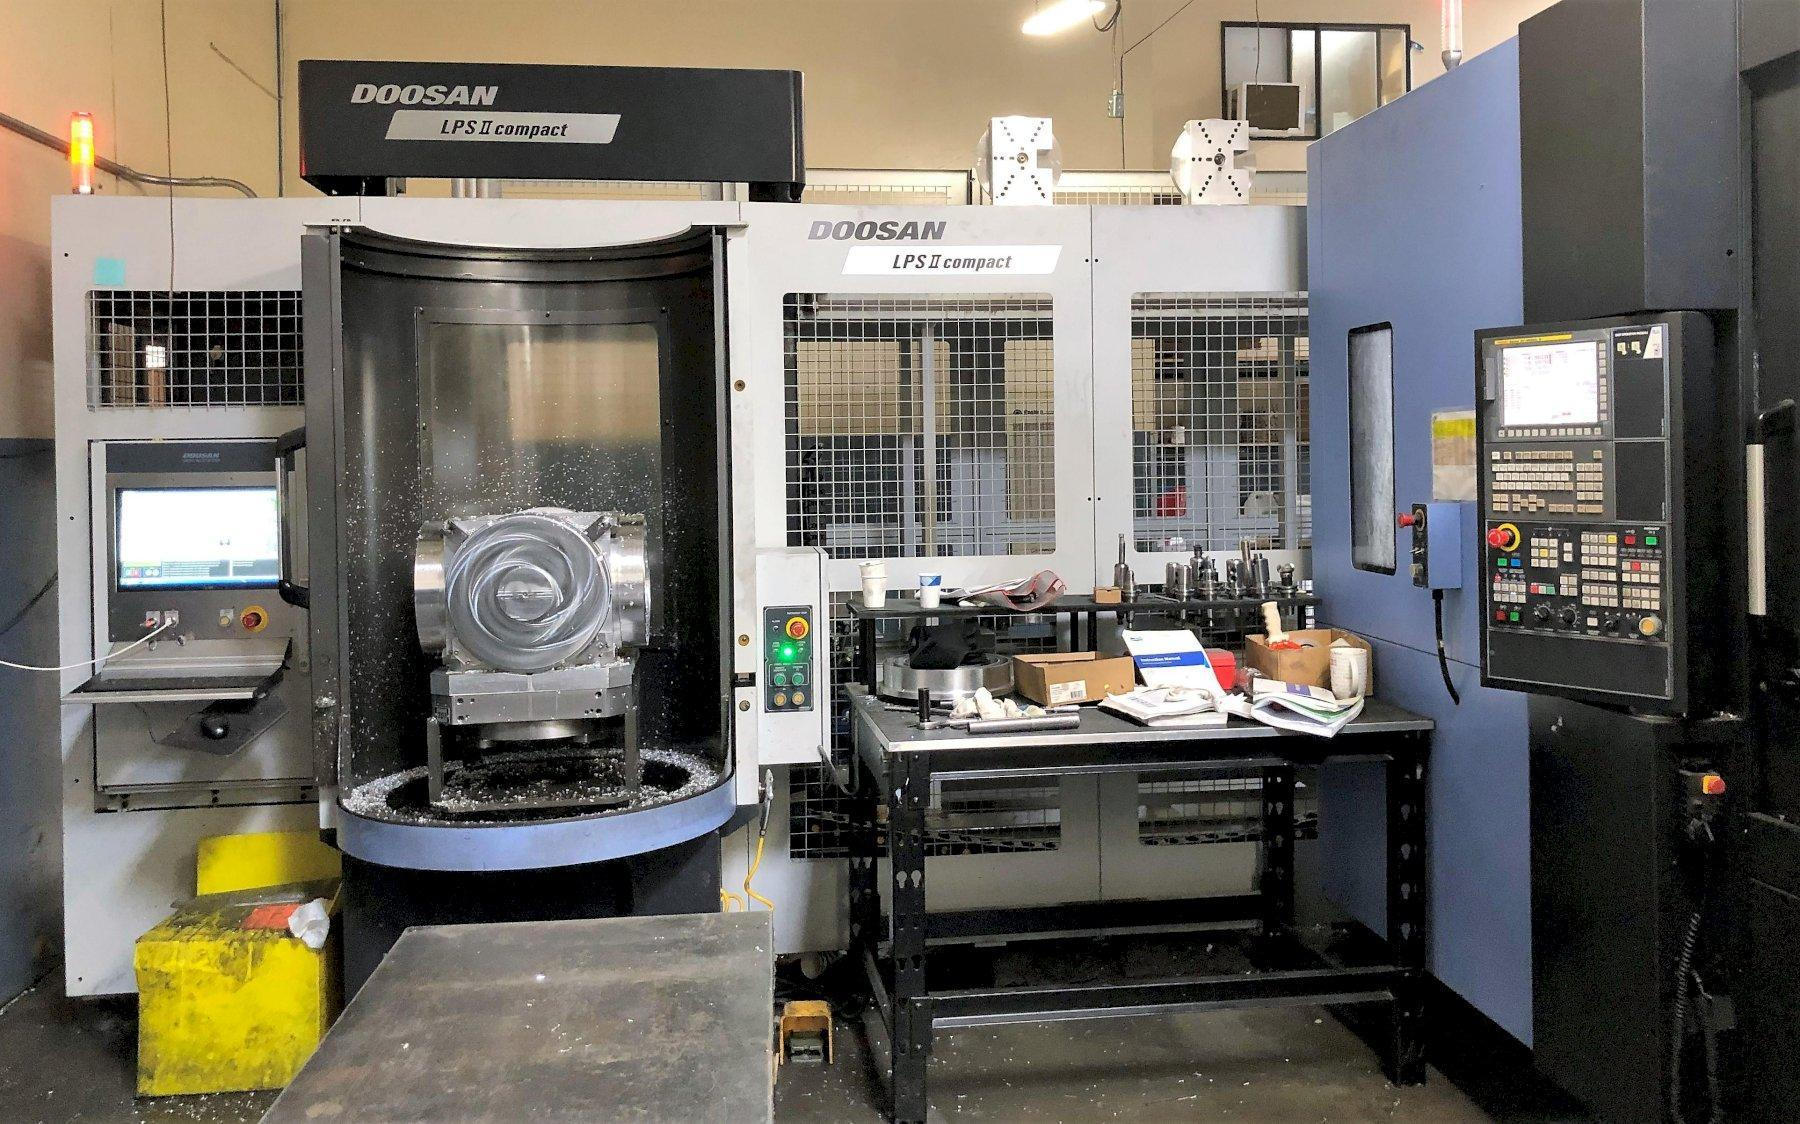 Doosan HP-5100II HMC 2015 with 10 Pallet Linear Pallet System,  Fanuc 31iB CNC Control, Full B-Axis, CT40, 14k RPM Spindle, 262 Position Magazine Tool Changer, Through Spindle Coolant, Rear Chip Conve